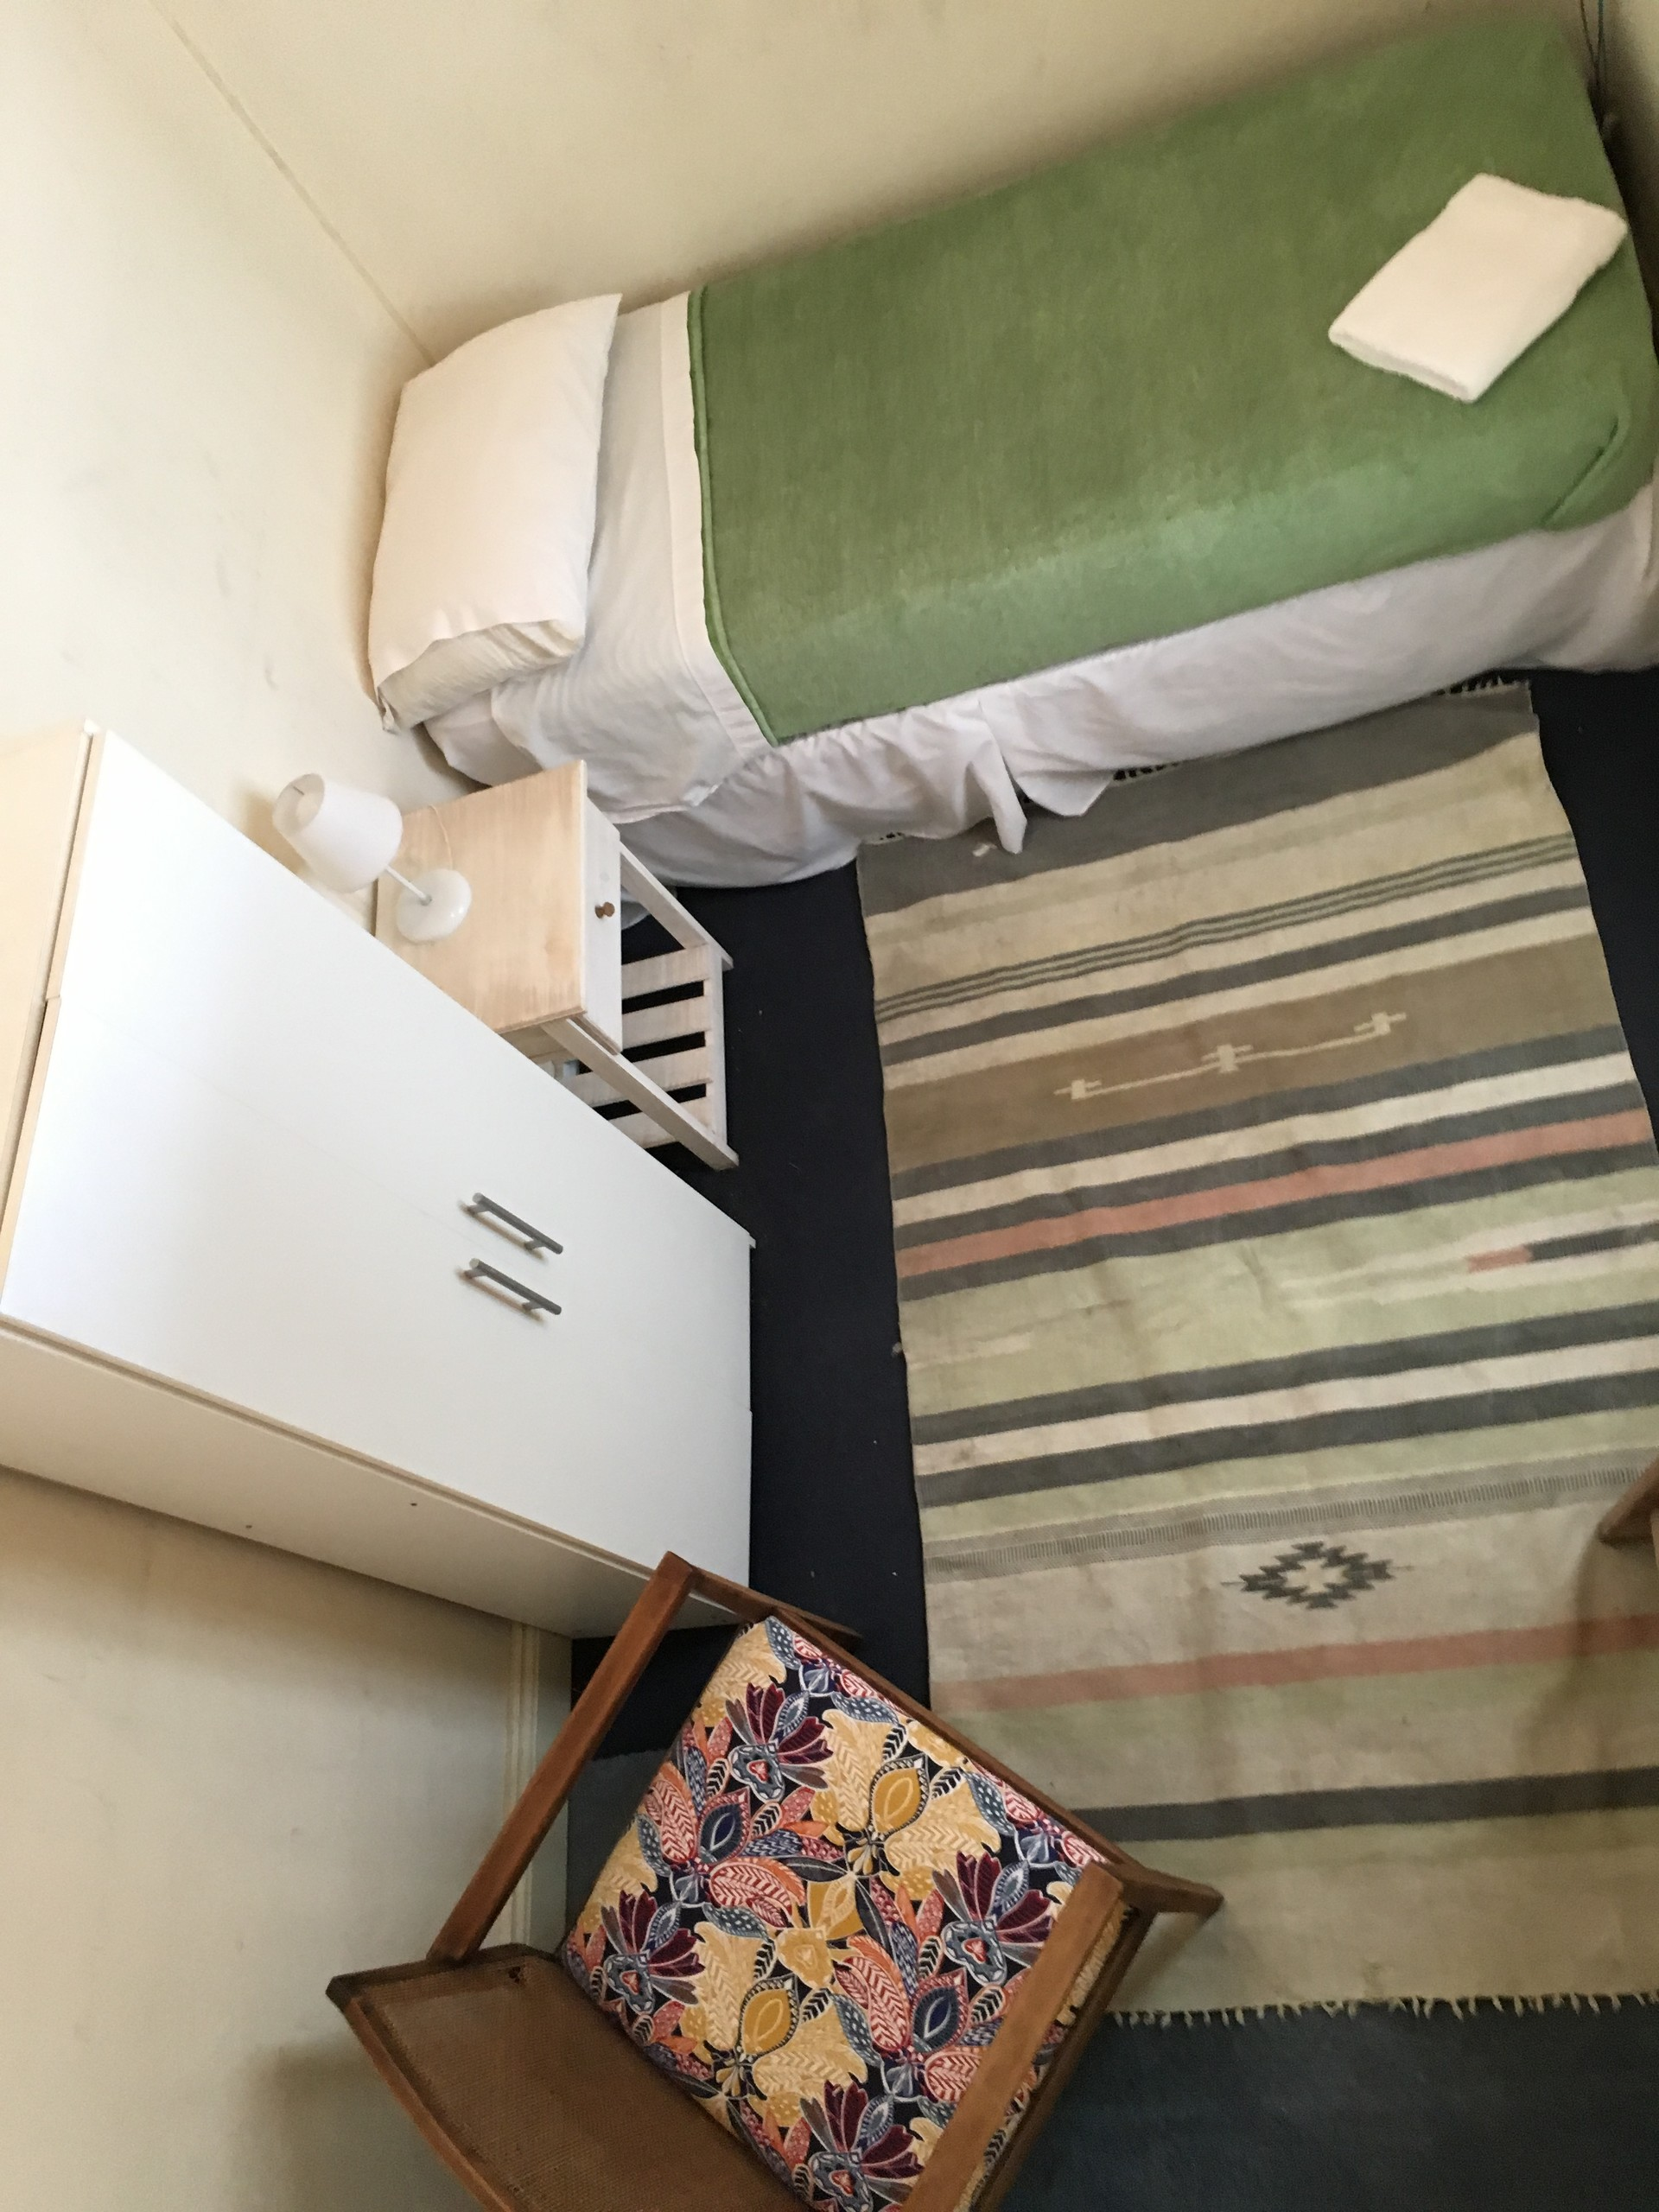 e0fd8923b58 STUDENT ROOM - Private fully equiped room in Recoleta. | Room for rent  Buenos Aires